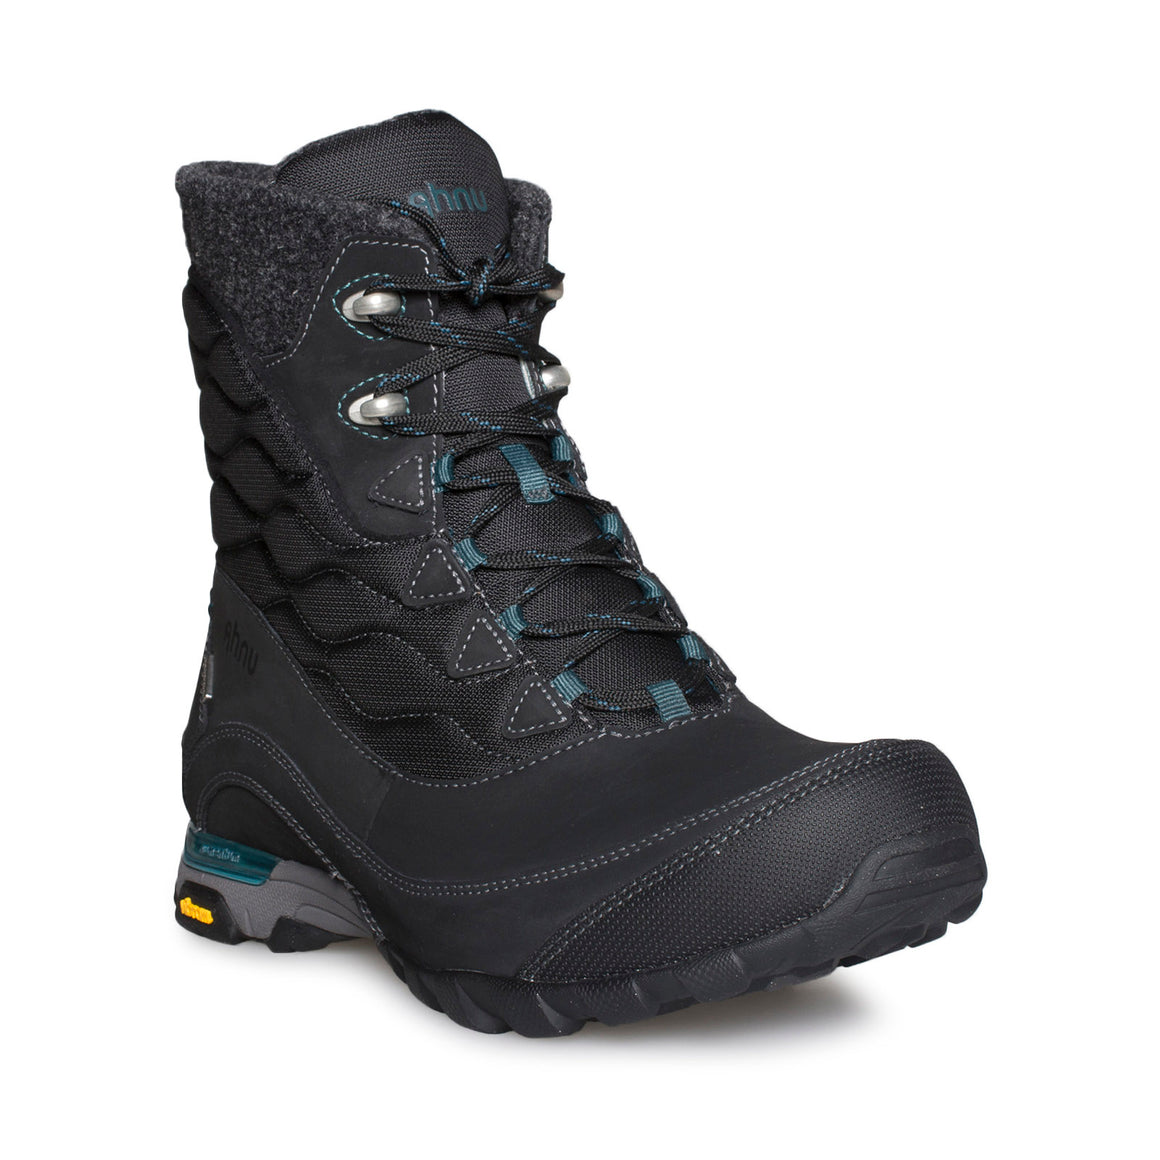 Ahnu Sugarfrost Insulated WP Black Boots - Women's